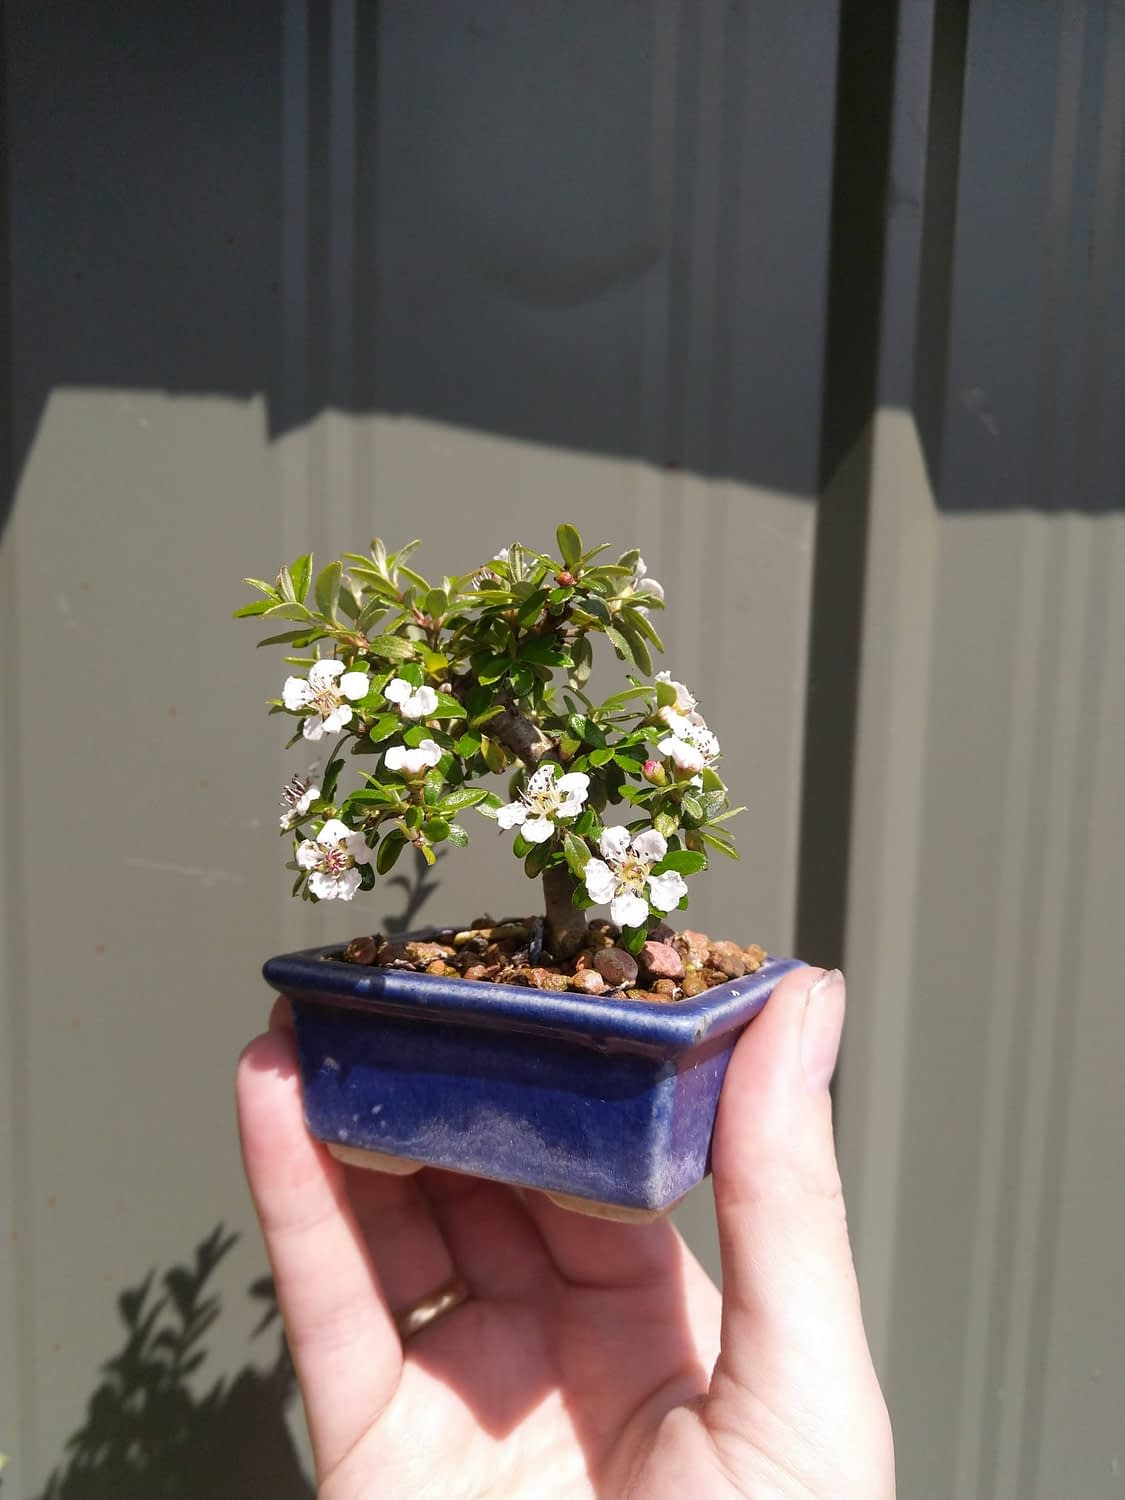 Shito cotoneaster in flower